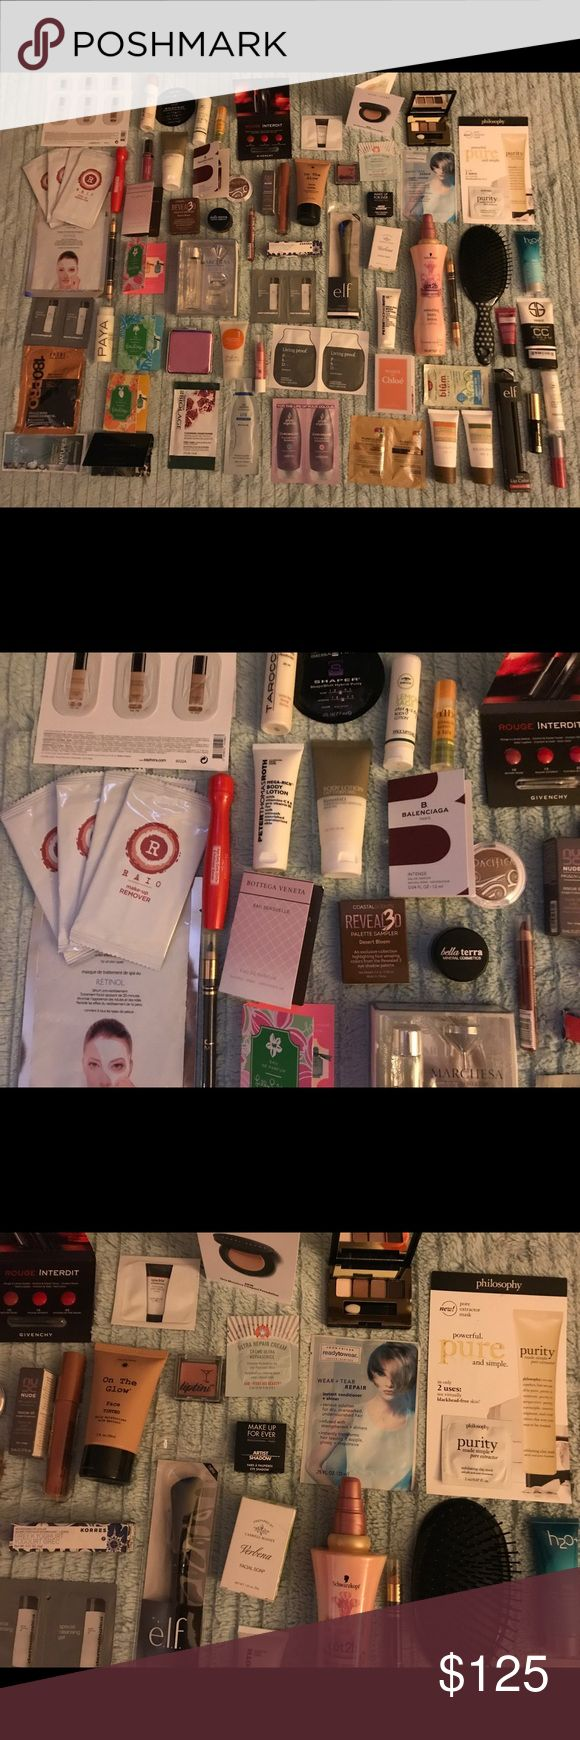 Huge high end Sephora beauty sample lot 93 pc 🌹 Mix of deluxe and packet samples-all great brands. Some are: peter Thomas Roth, algenist, IT cosmetics, Chanel, Josie Maran, living proof, l'occitaine, clarins, Clinique, Bobbie Brown, Korres, Urban Decay, Givency, Pureology, hourglass, Nars, Lilly Pulitzer, BalenciagaPacifa, Keihls, bottega Veneta, strivectin, dermatologica, Estée Lauder and MORE!!! Comes with everything seen here. Great lot to play with! ALL NEW and unopened. Sephora Makeup